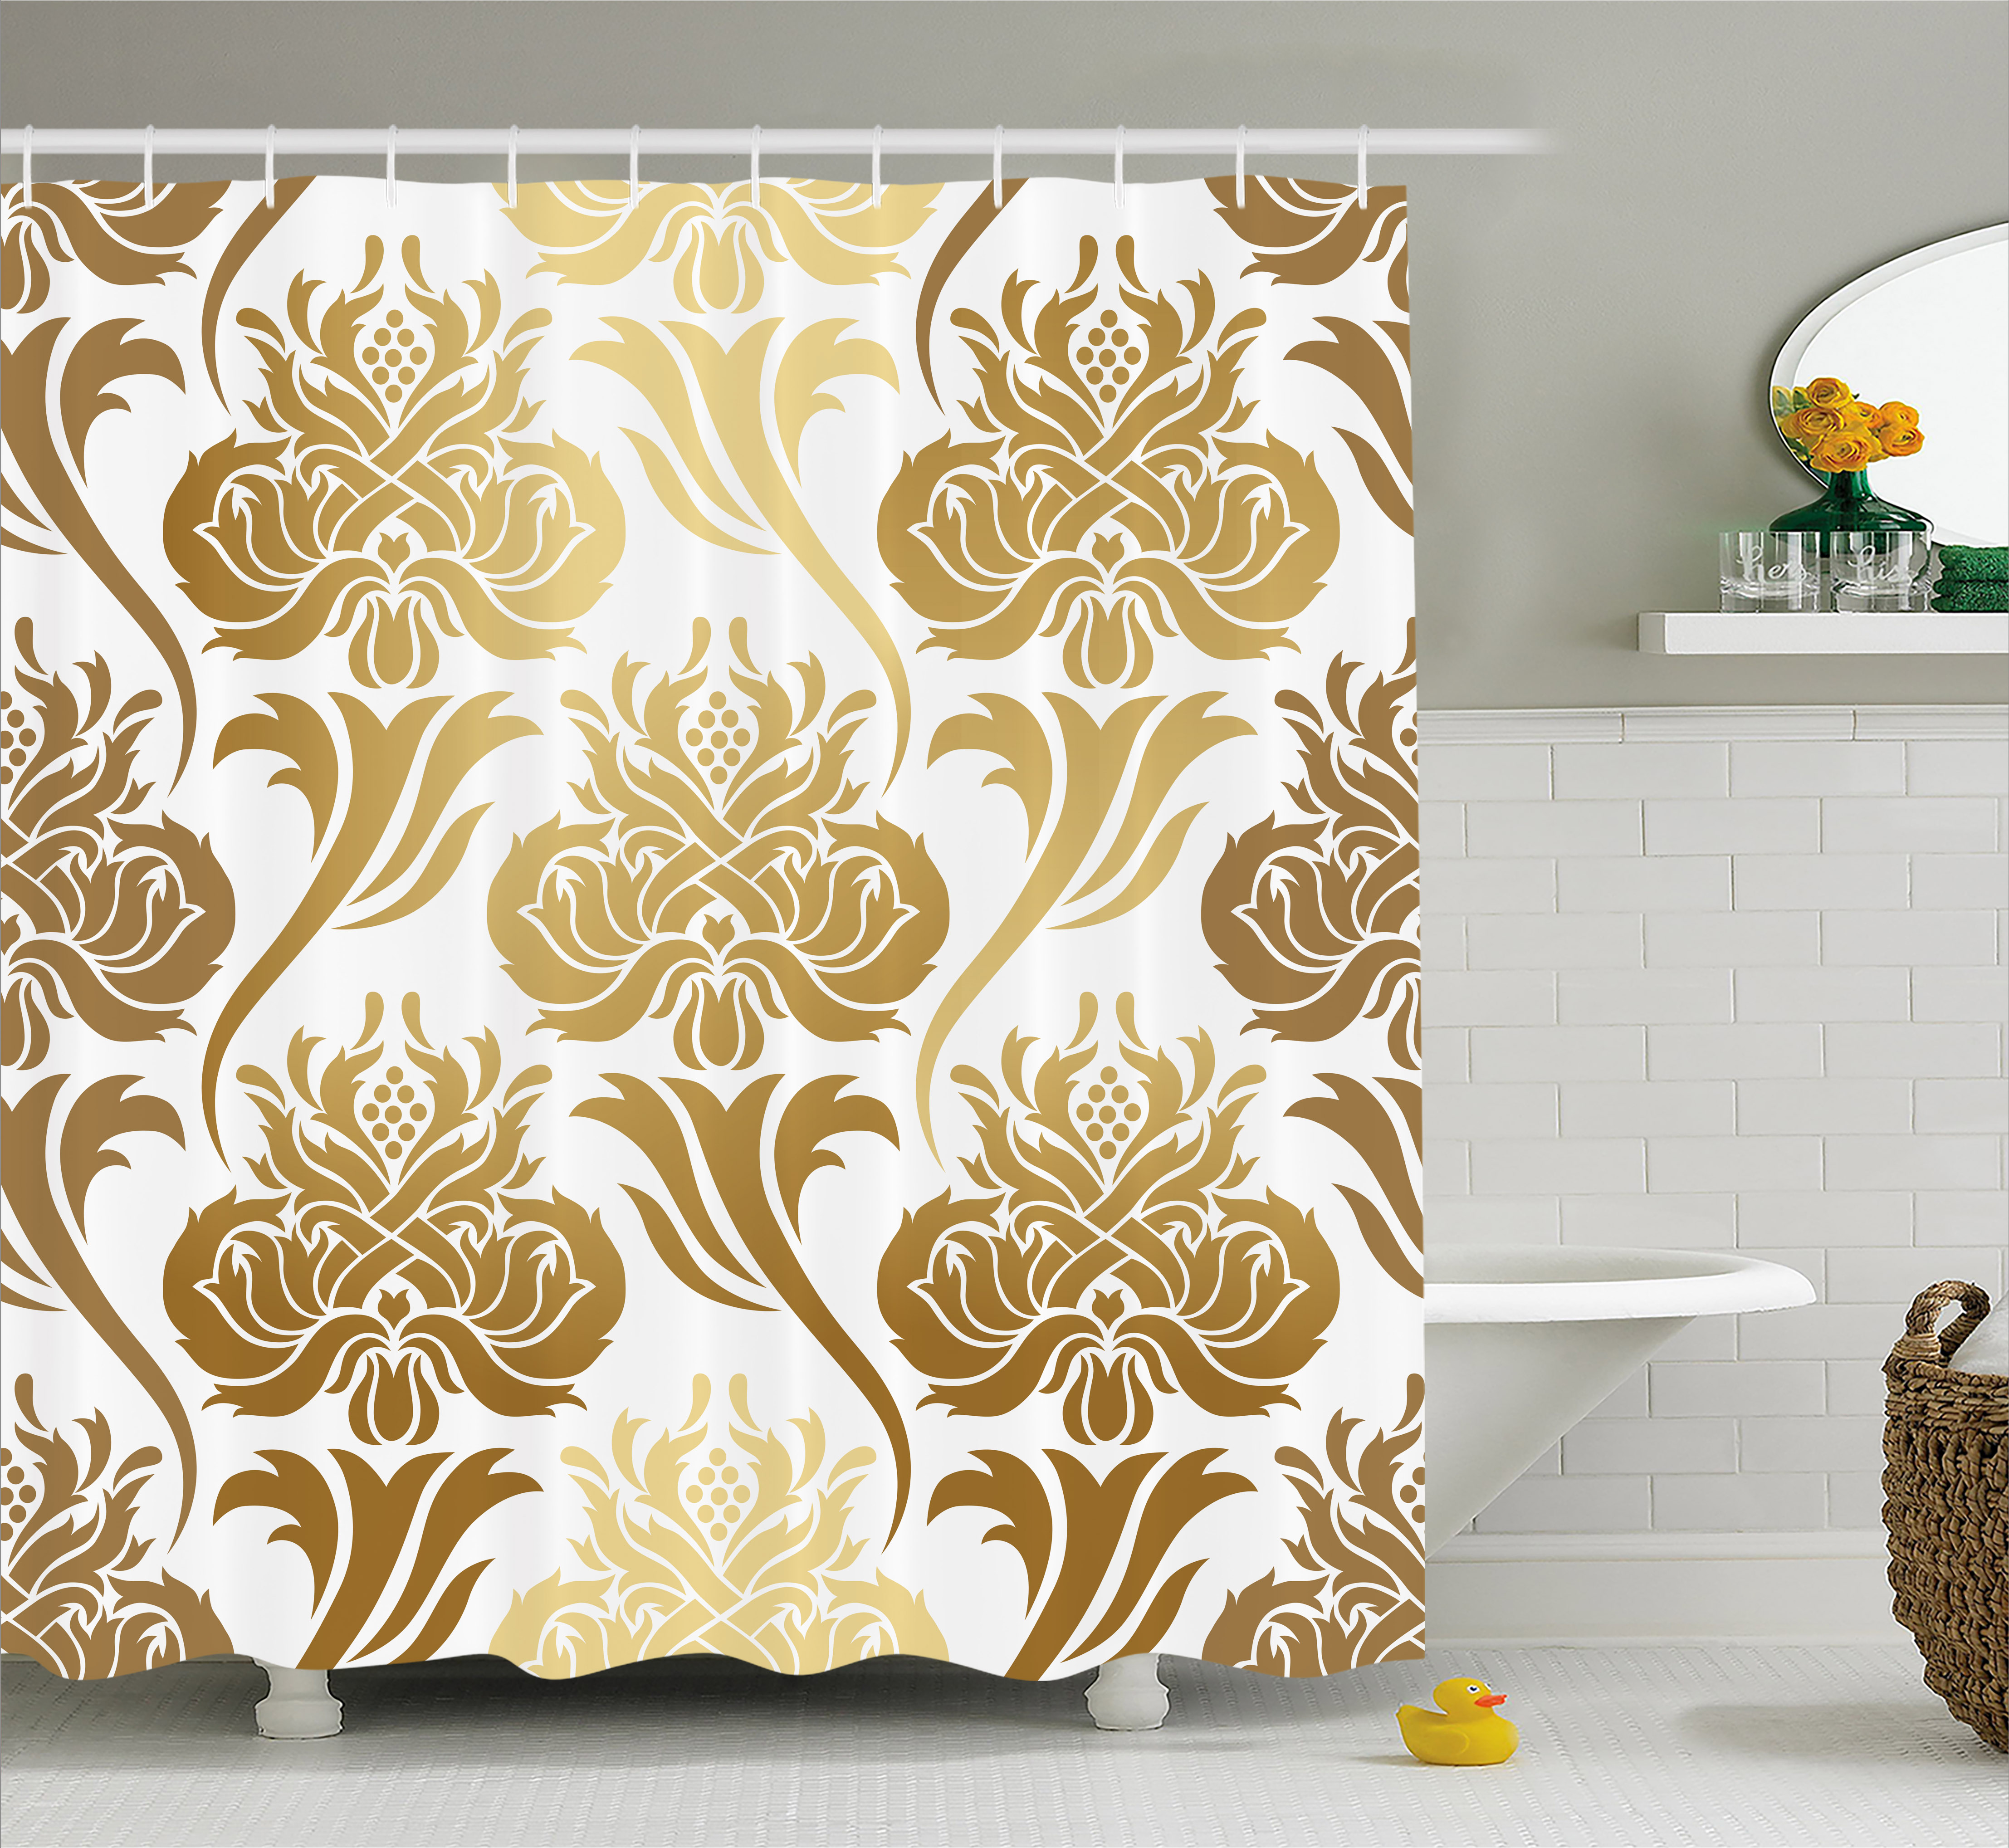 Gold And White Shower Curtain, Damask Ombre Abstract Image With Floral  Asian Inspired Details Print